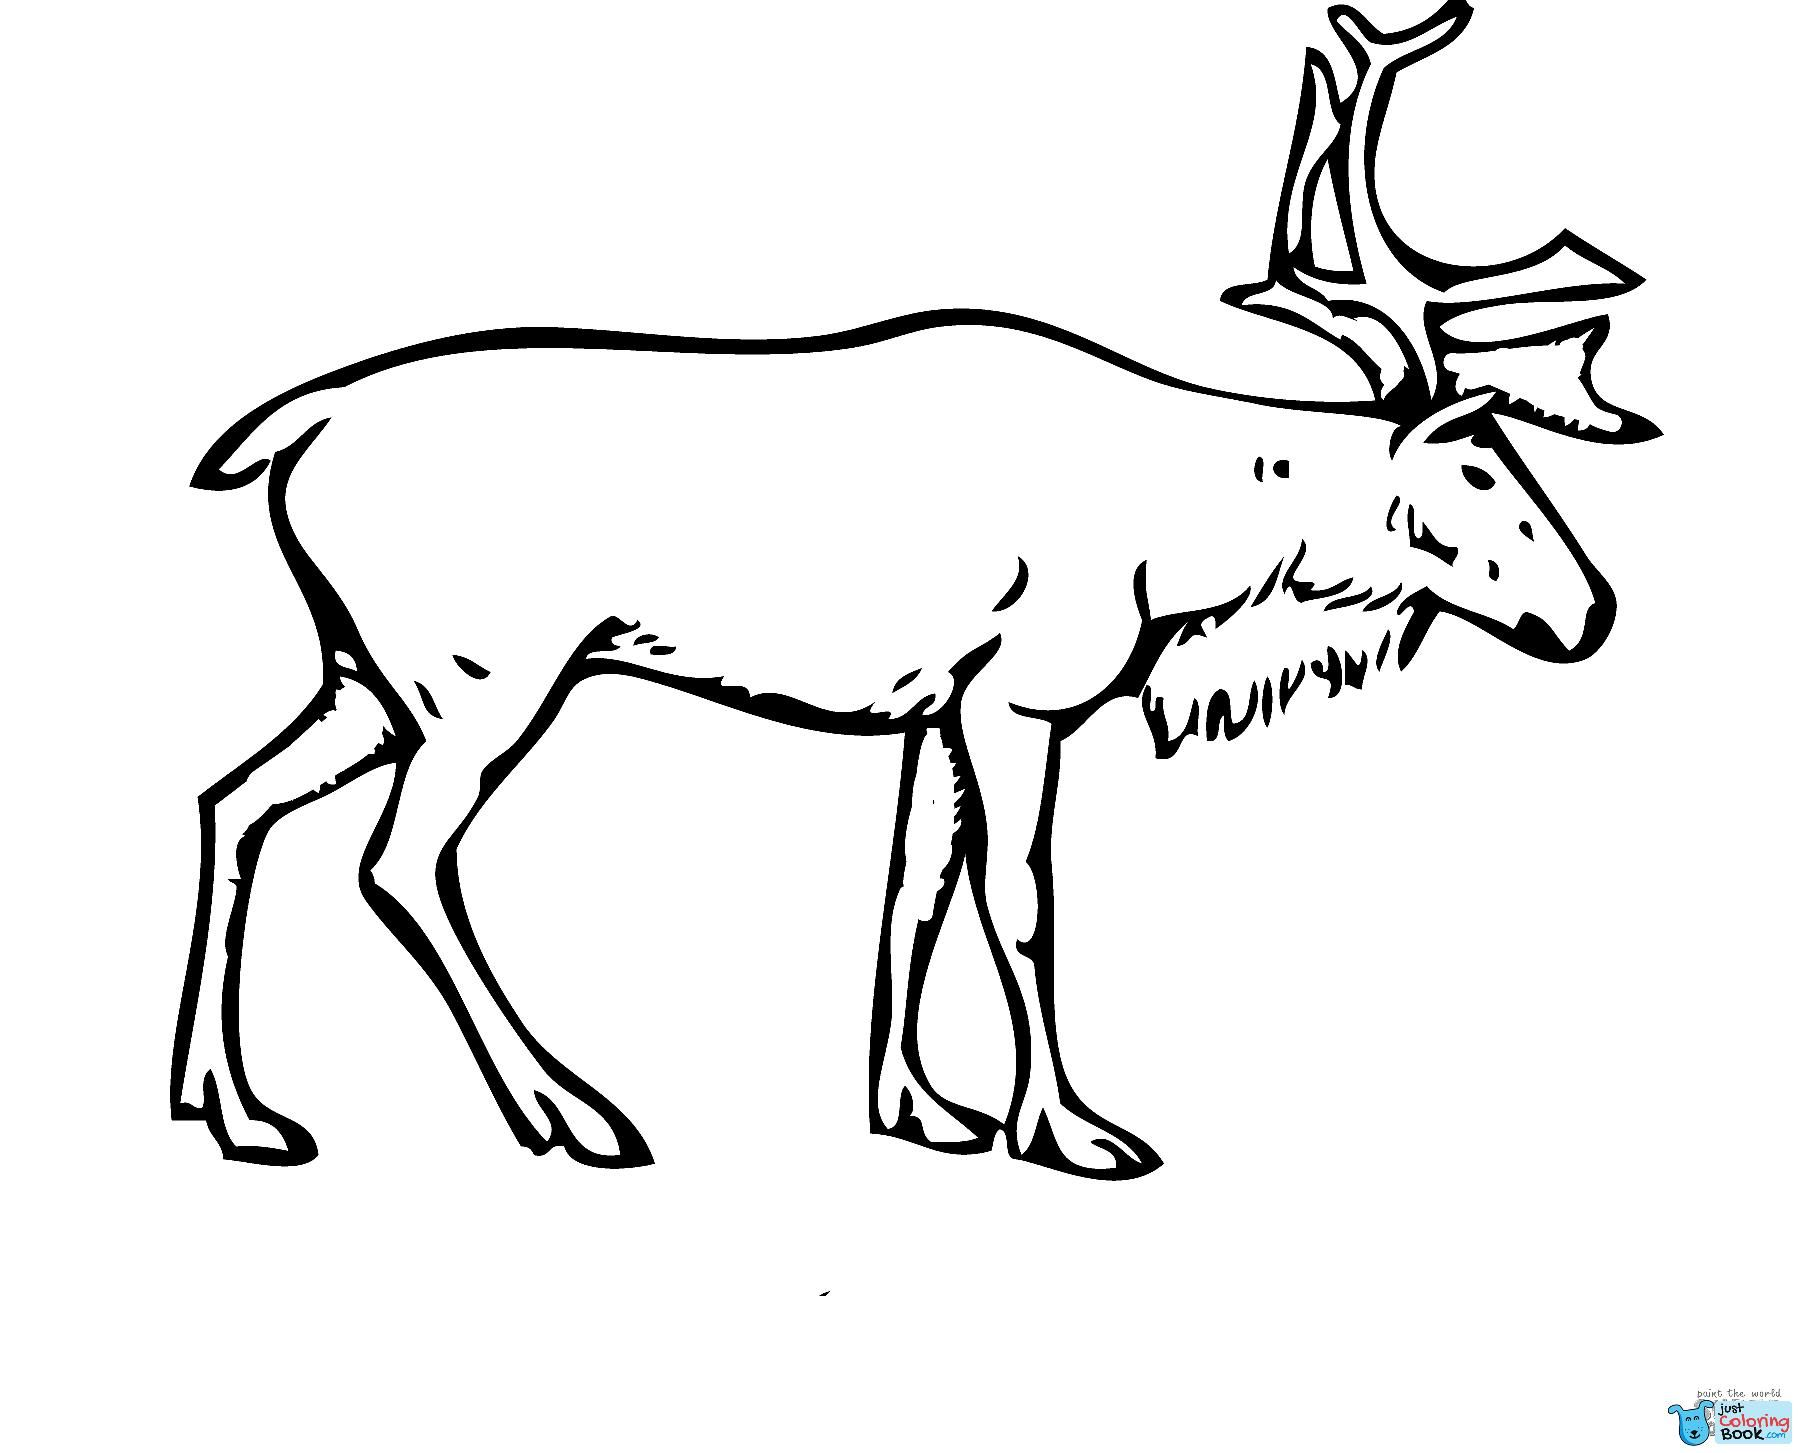 Swedish Reindeer Coloring Page Free Printable Coloring Pages Throughout Download Printable Swedish Re Deer Coloring Pages Coloring Pages Animal Coloring Pages